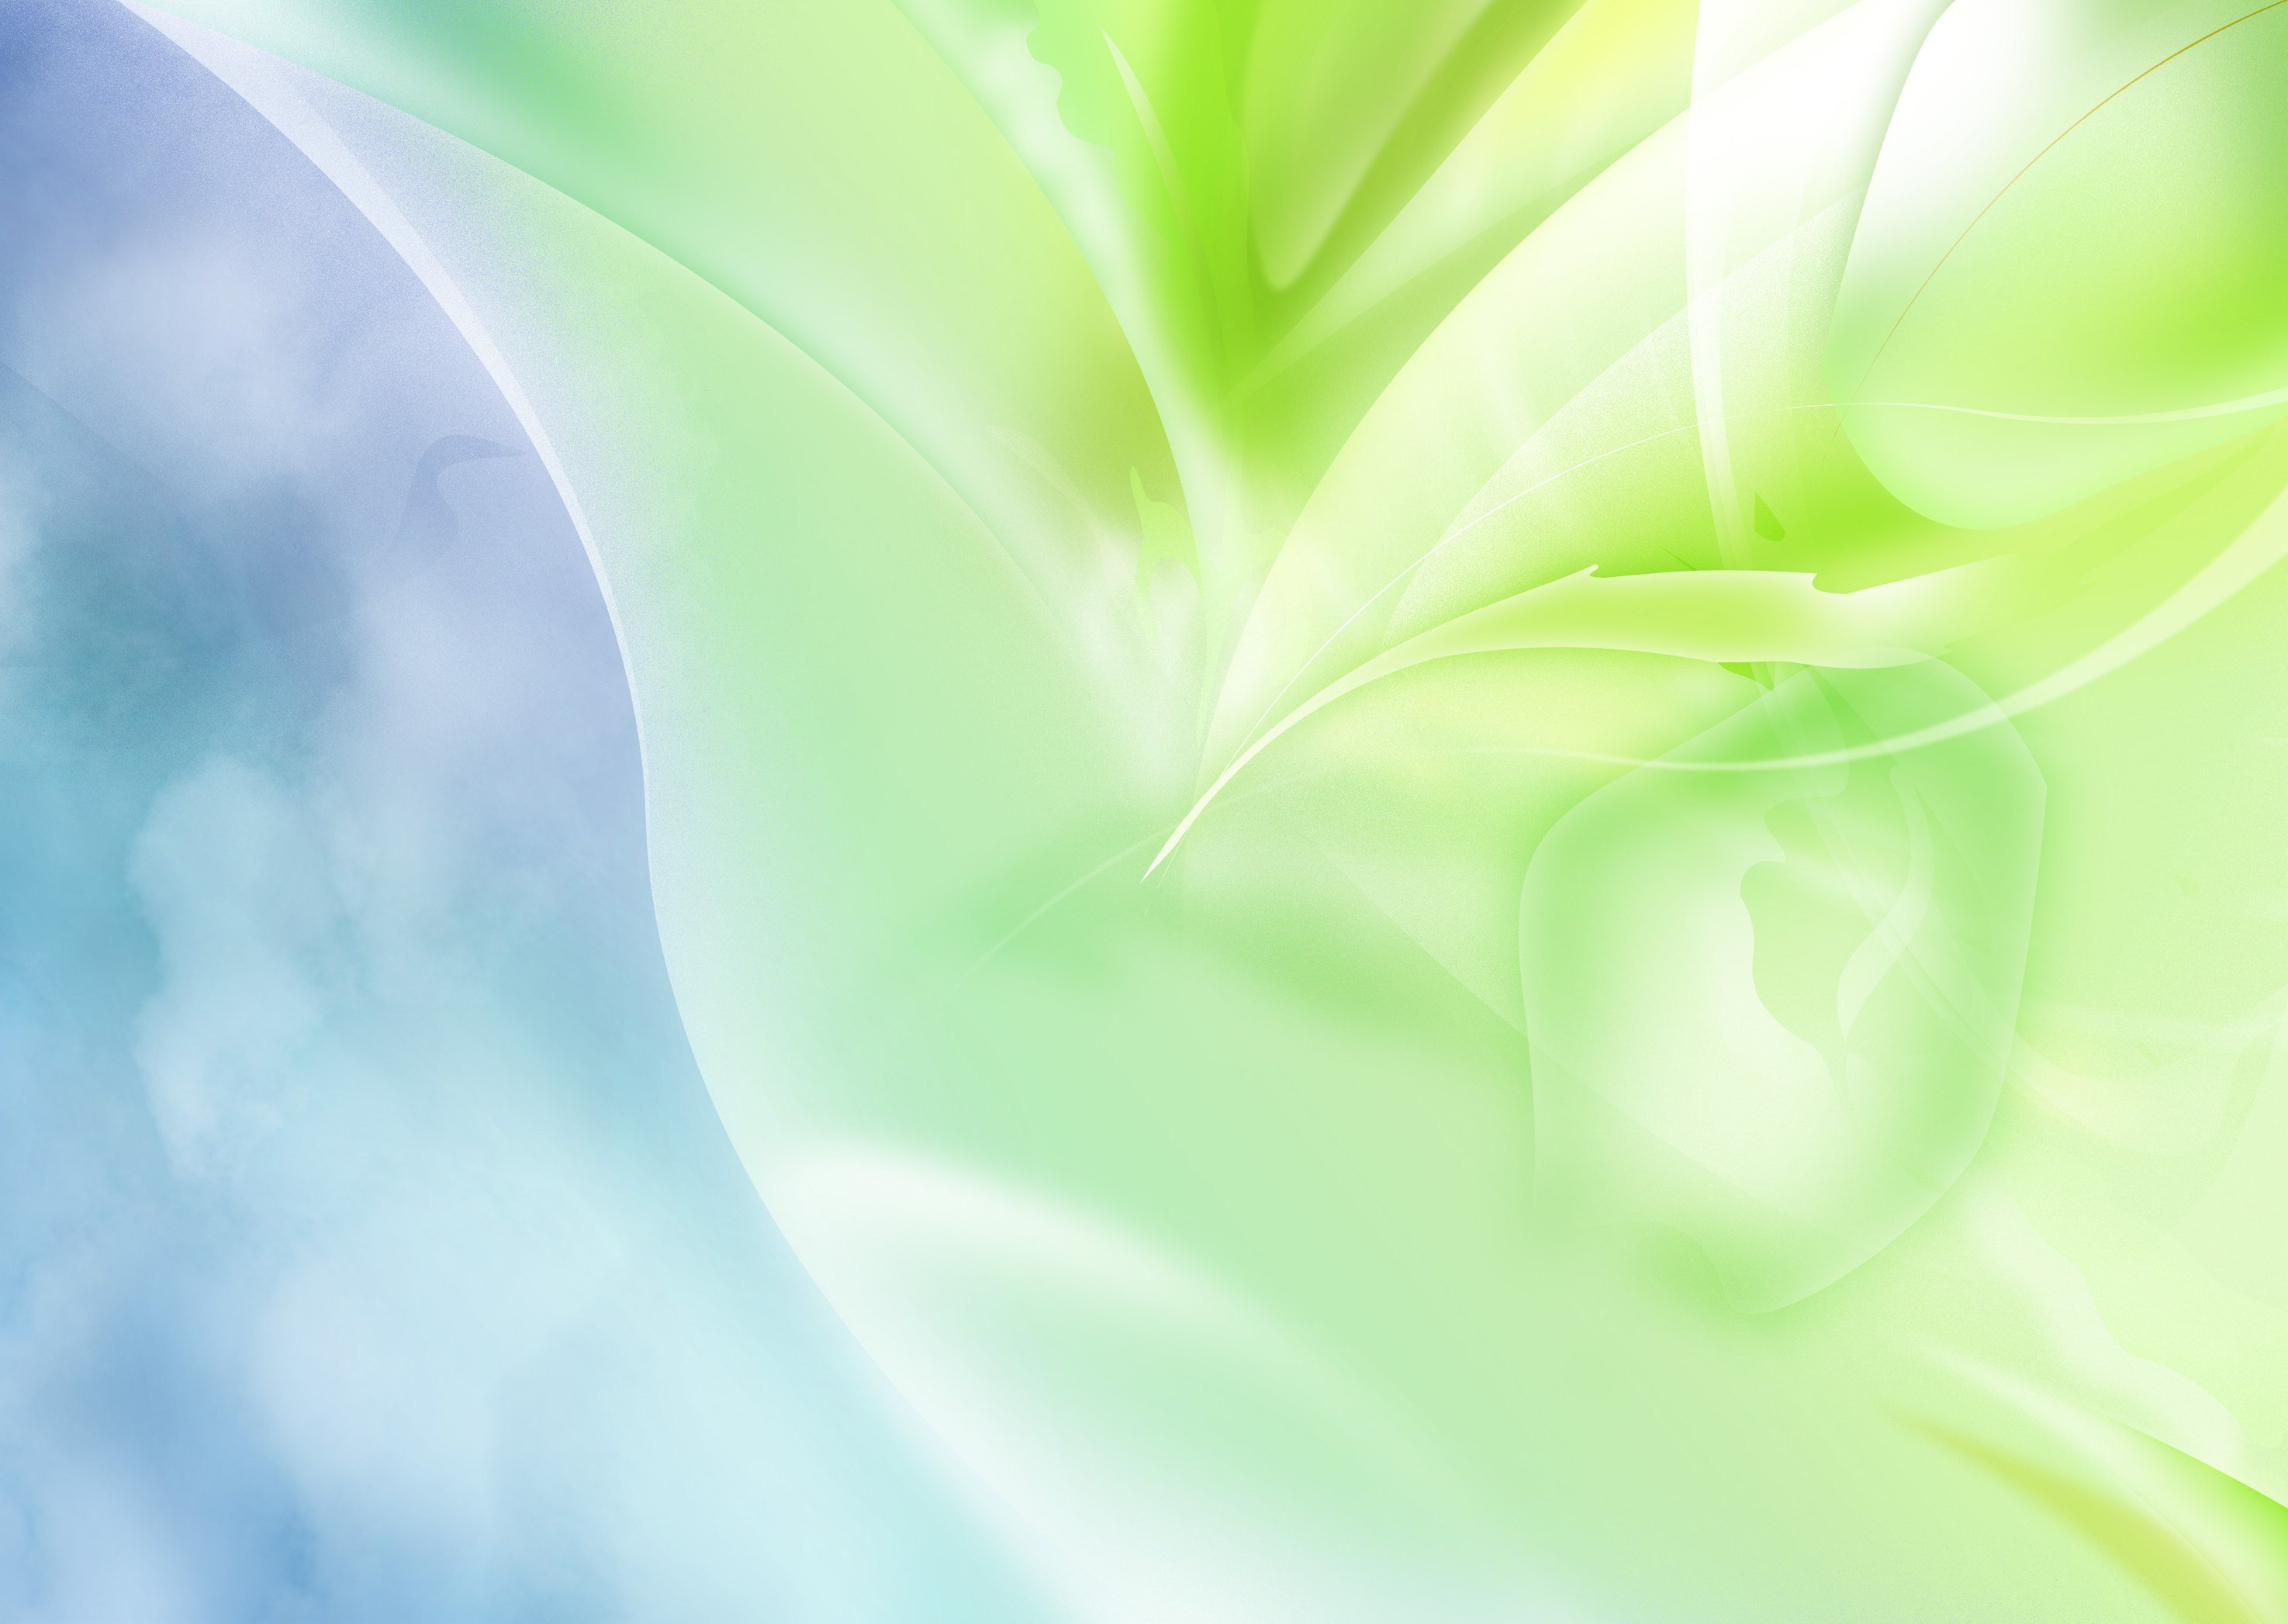 green abstract blue background wallpapers and images   wallpapers